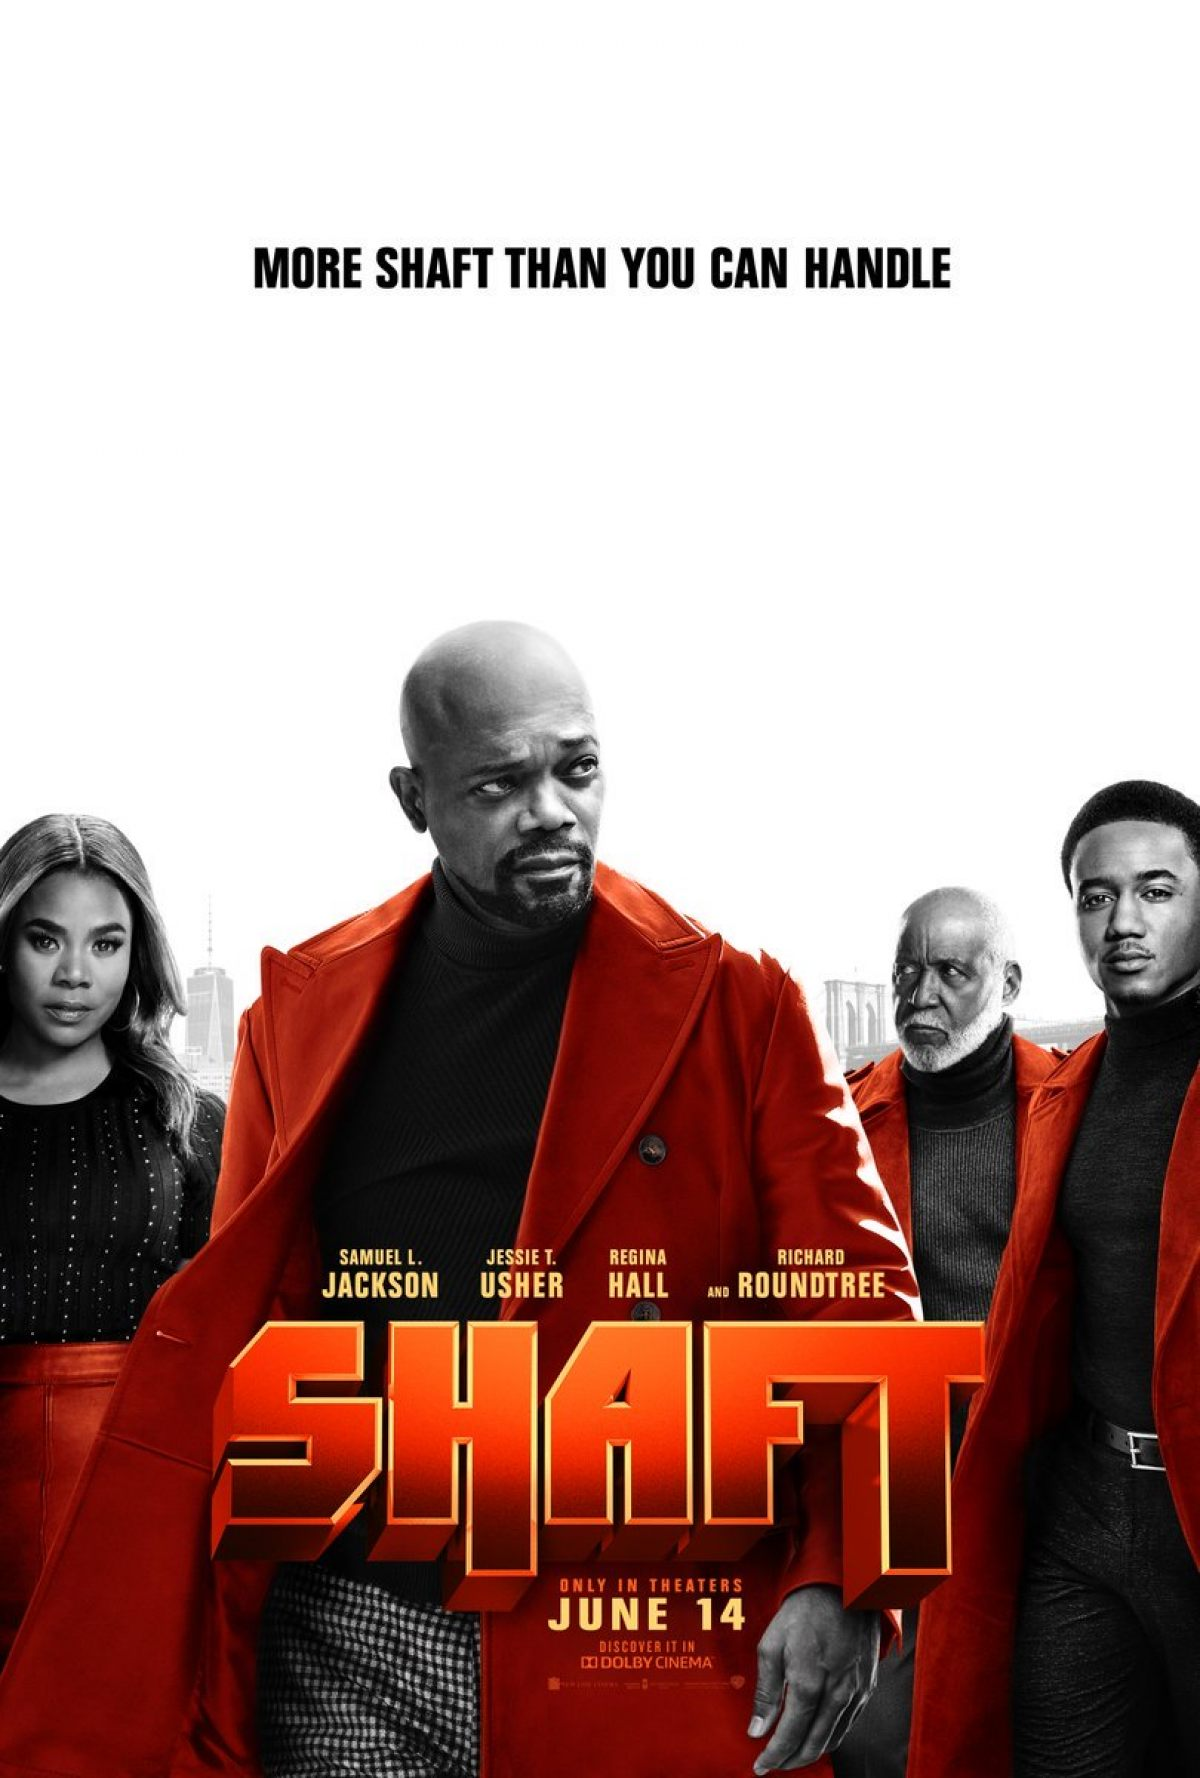 Shaft-Poster-2019_1200_1778_81_s.jpeg